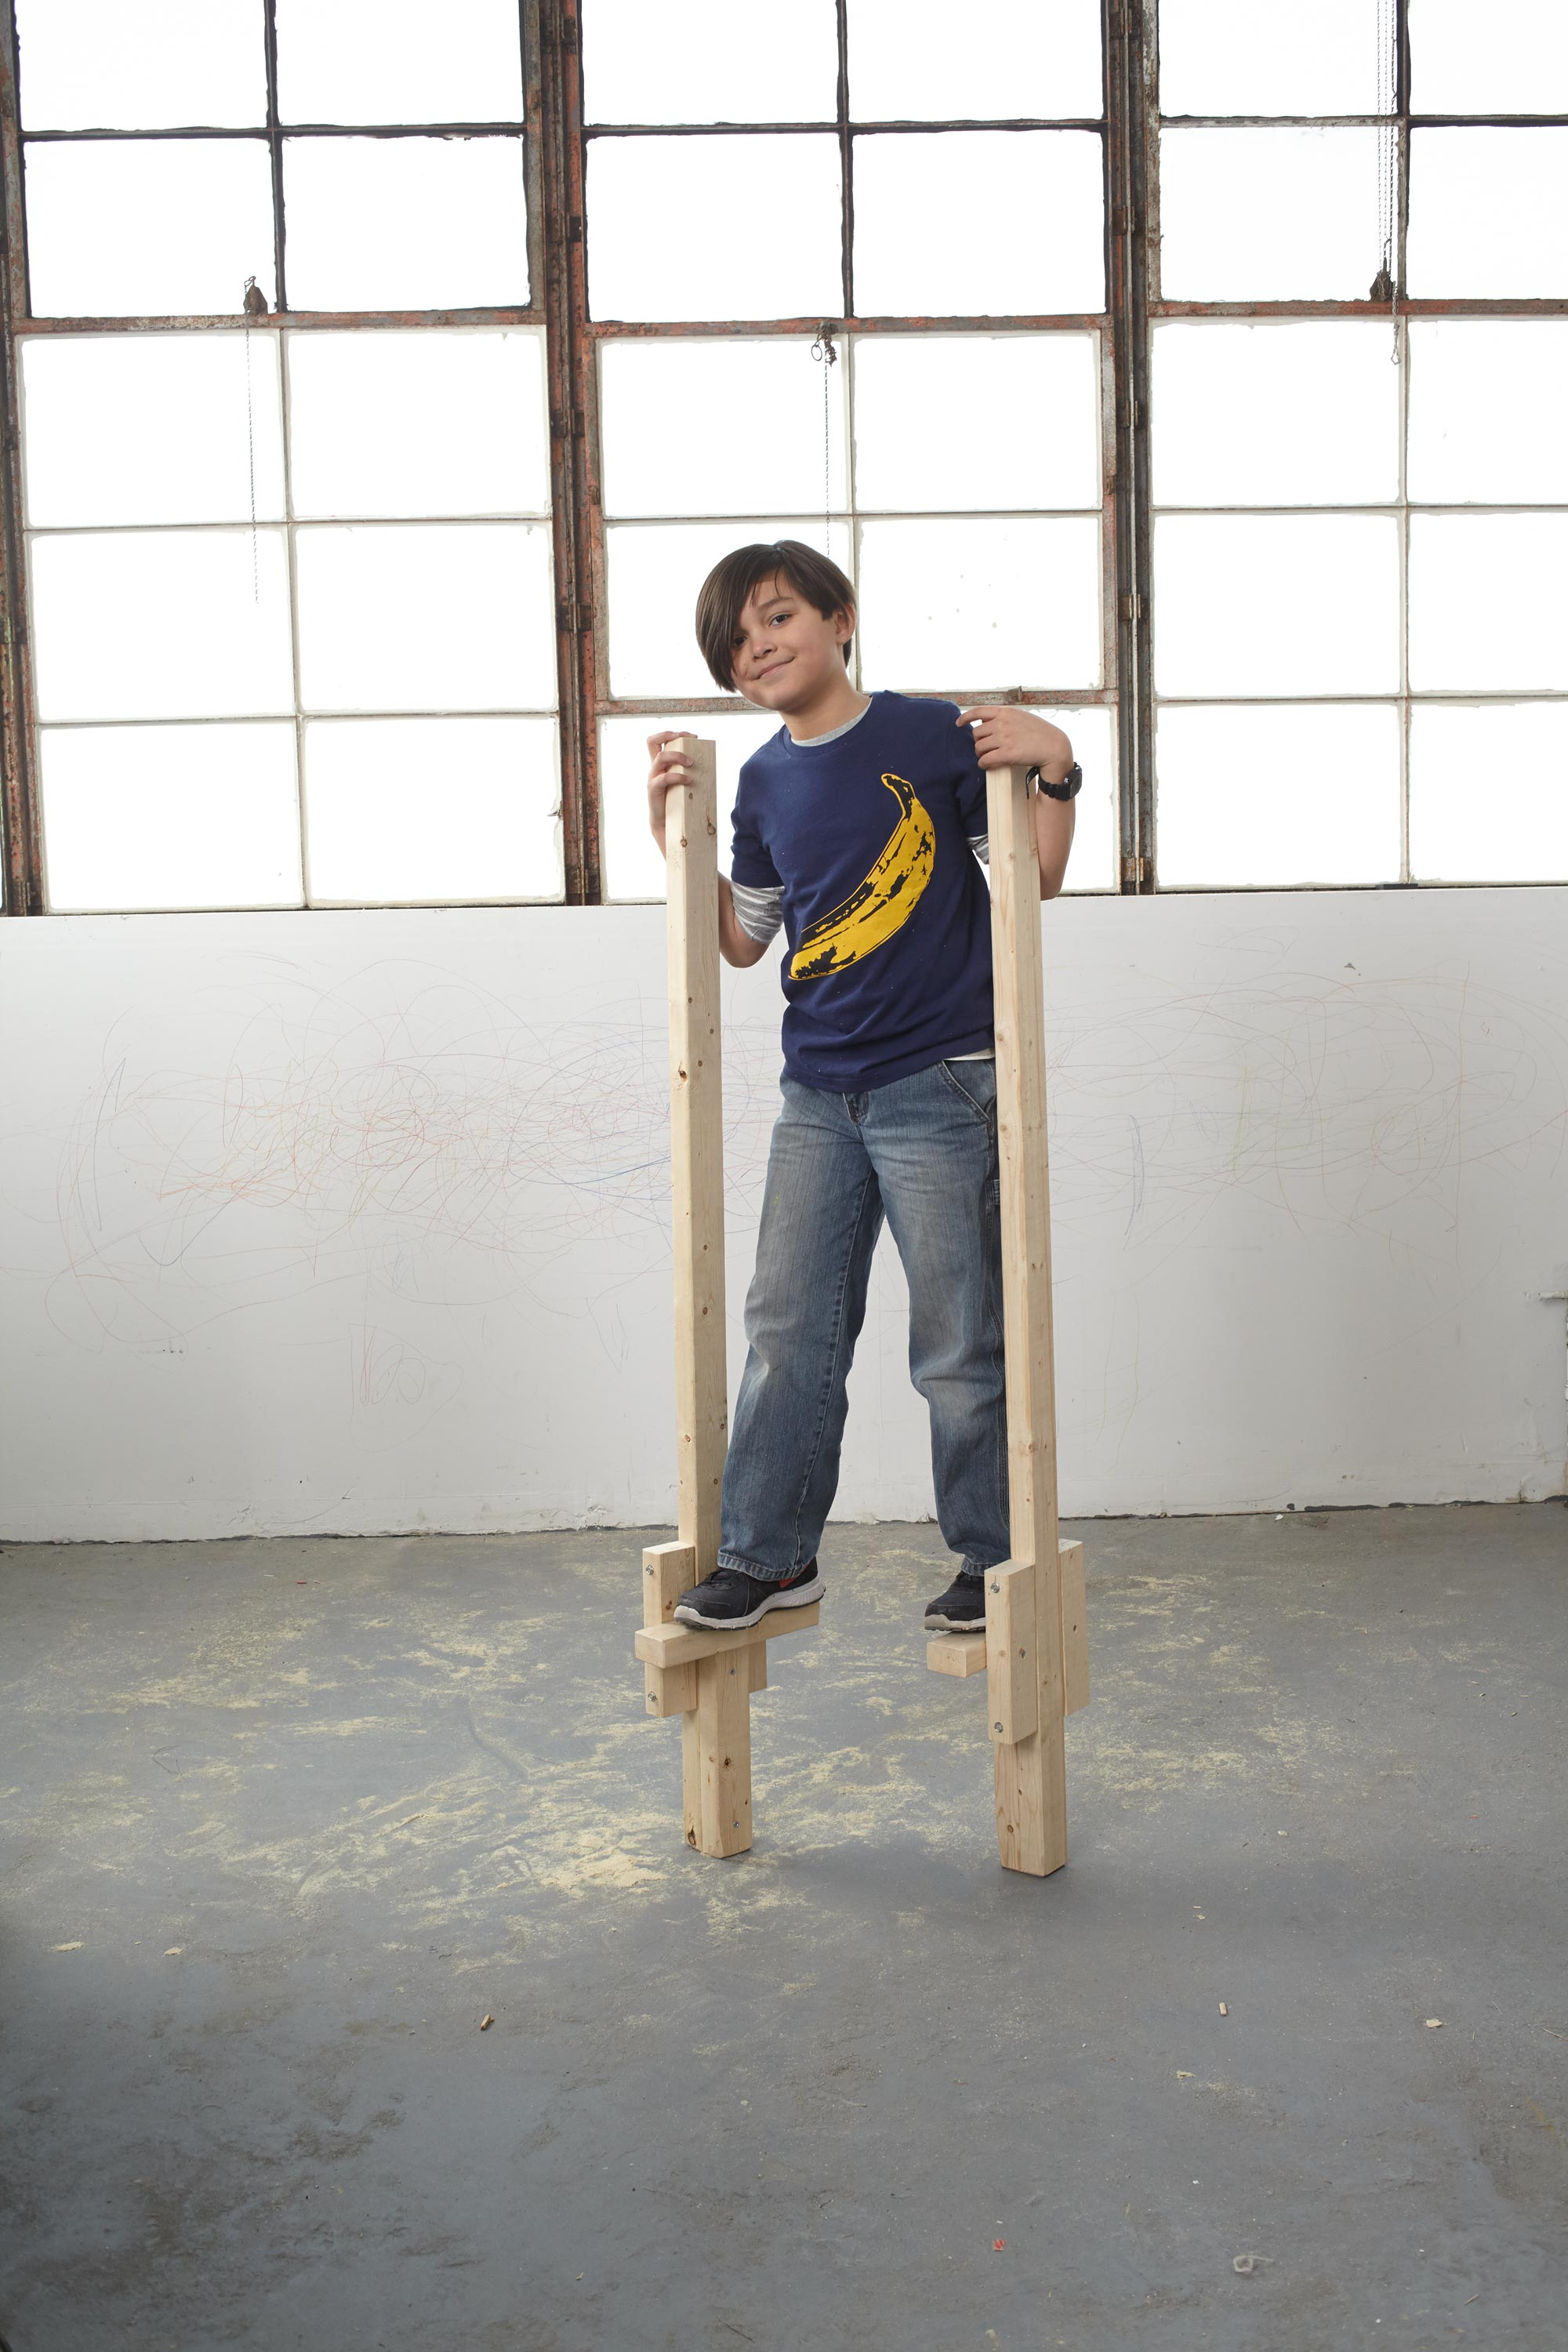 How To Build A Pair Of Stilts